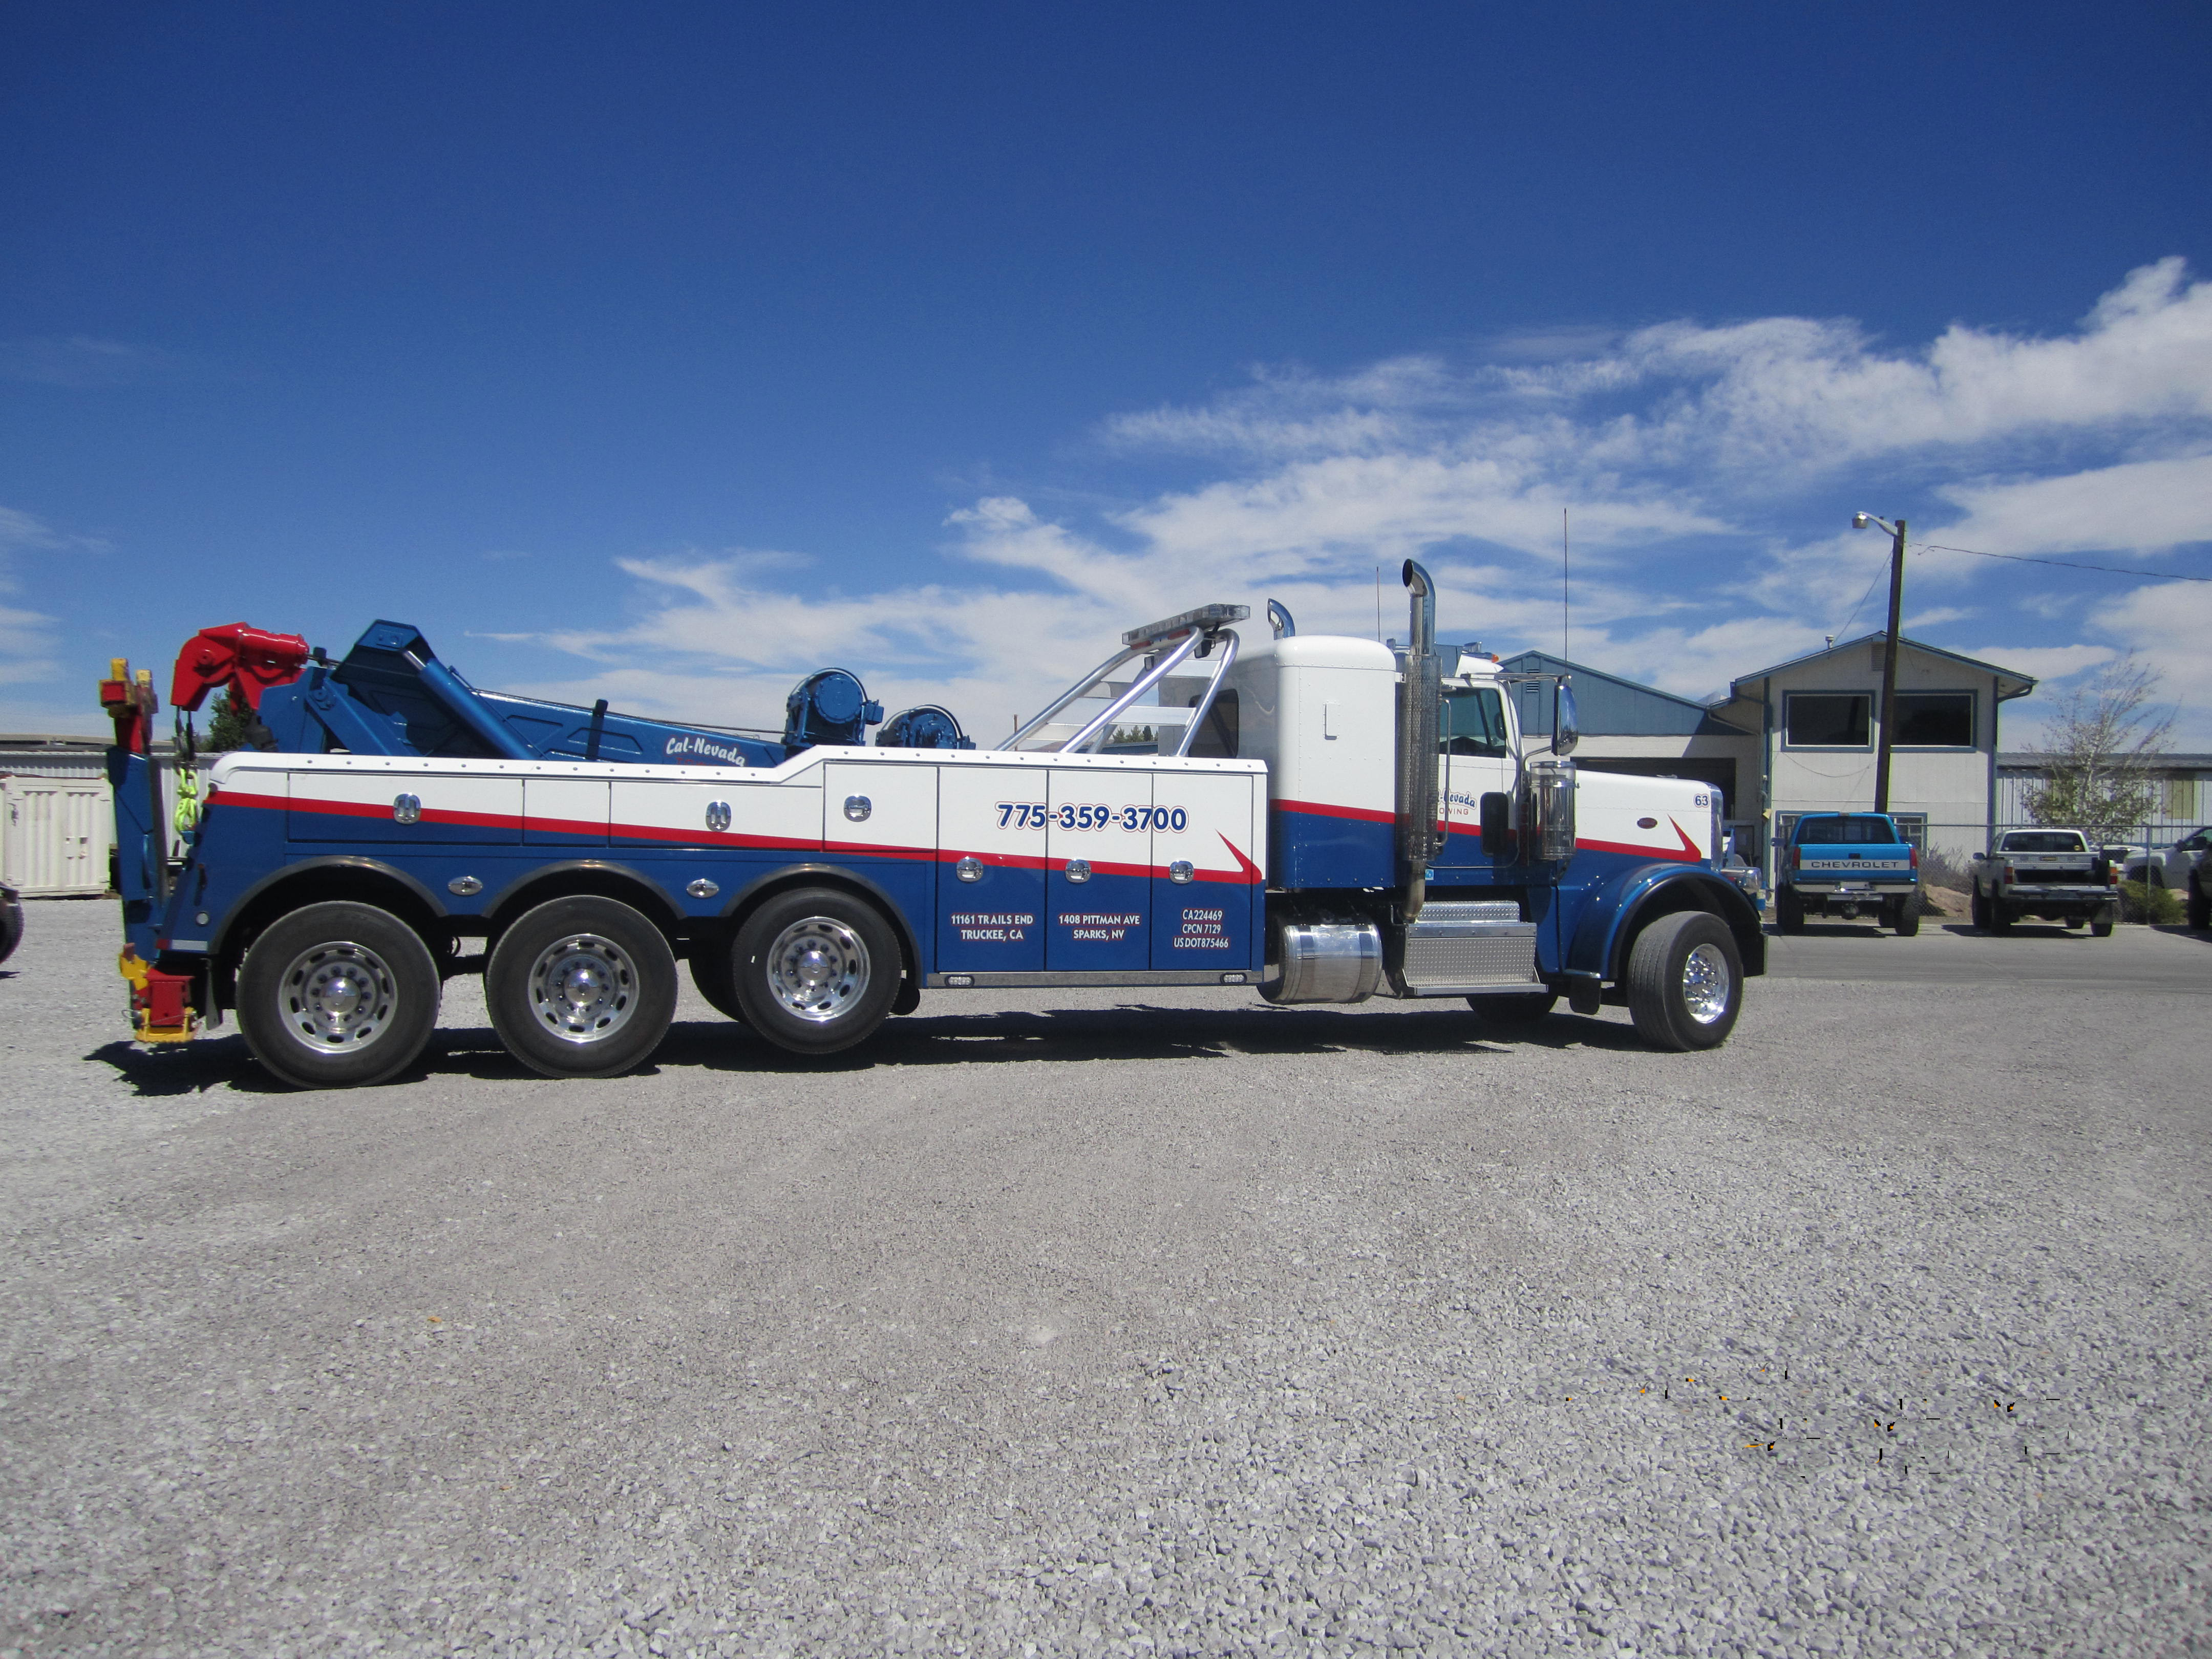 Cal Nevada Towing In Truckee Ca Whitepages